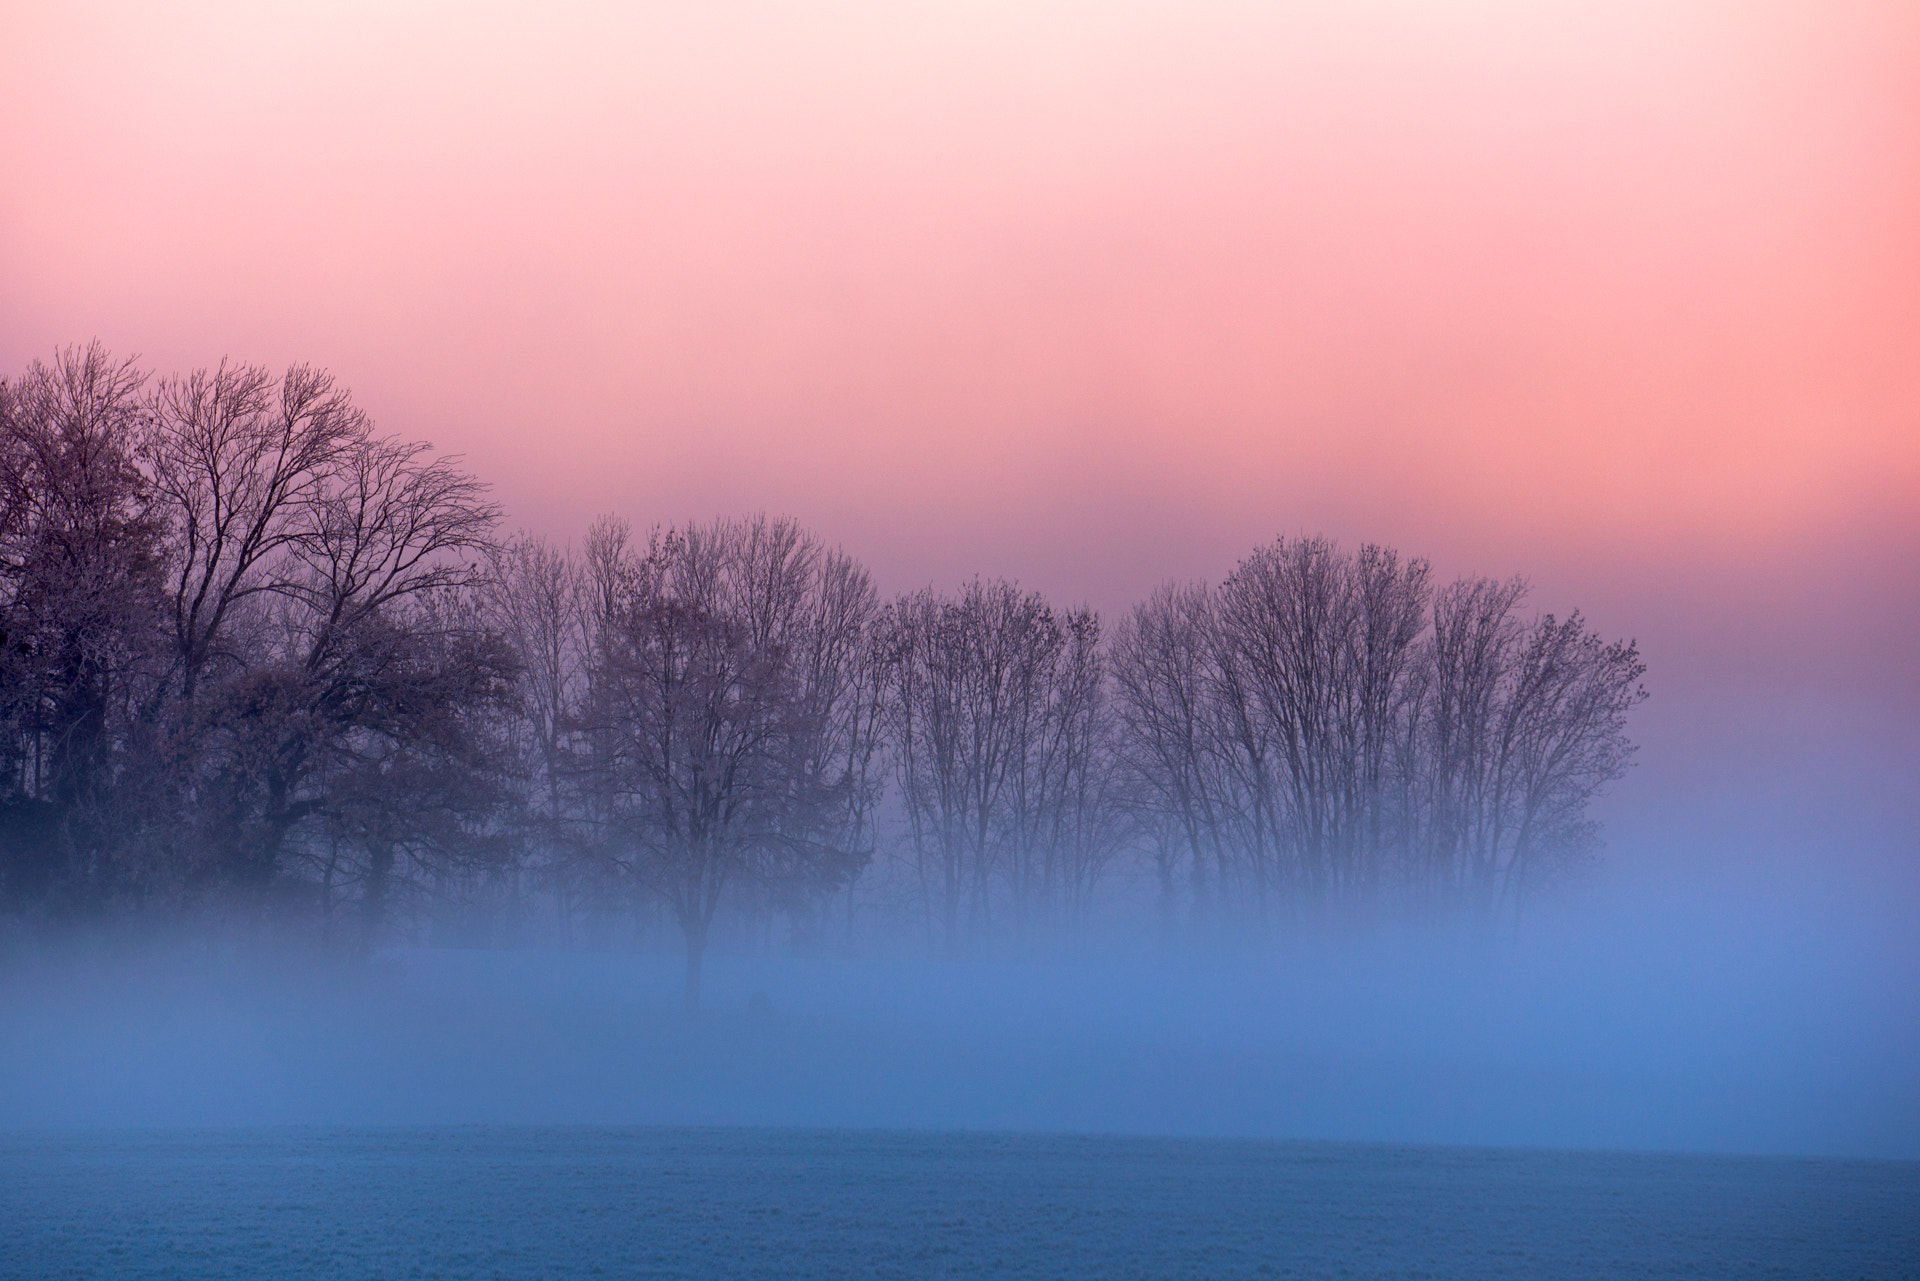 Photograph Blue Fog by Laurent Decuyper on 500px